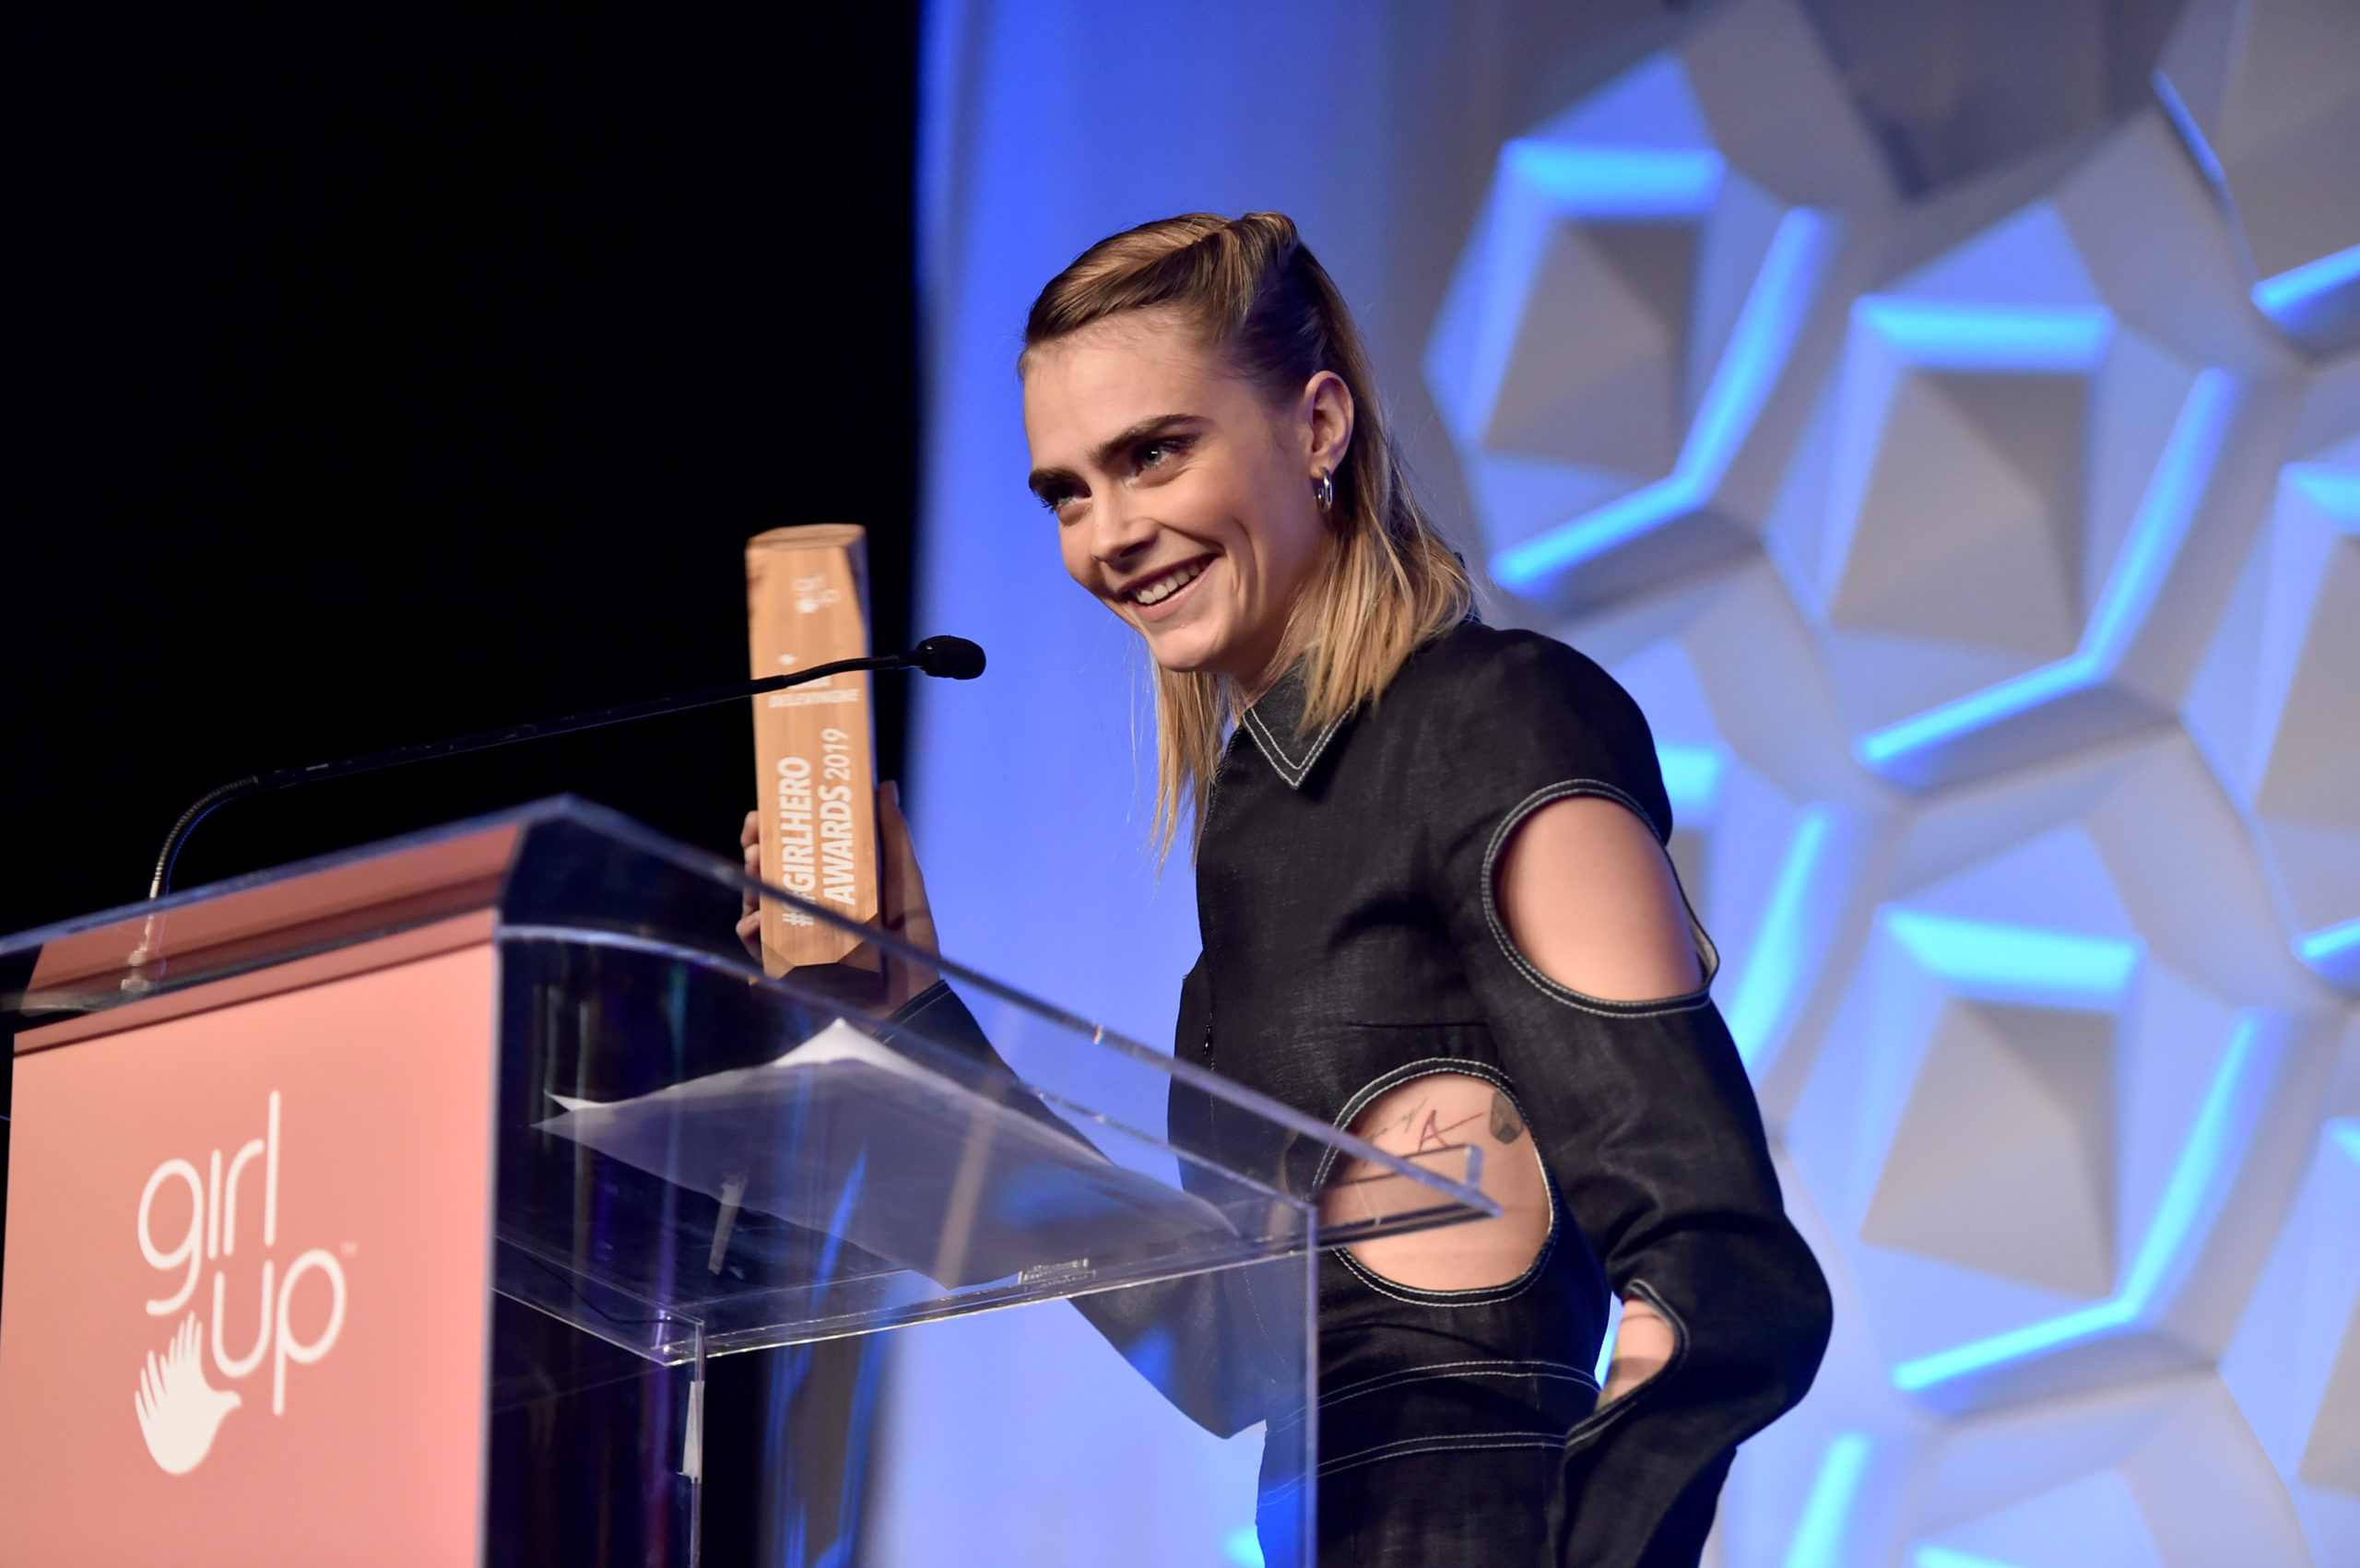 (close shot ) Cara Delevingne is holding her award next to the podium, and smile to the crowd